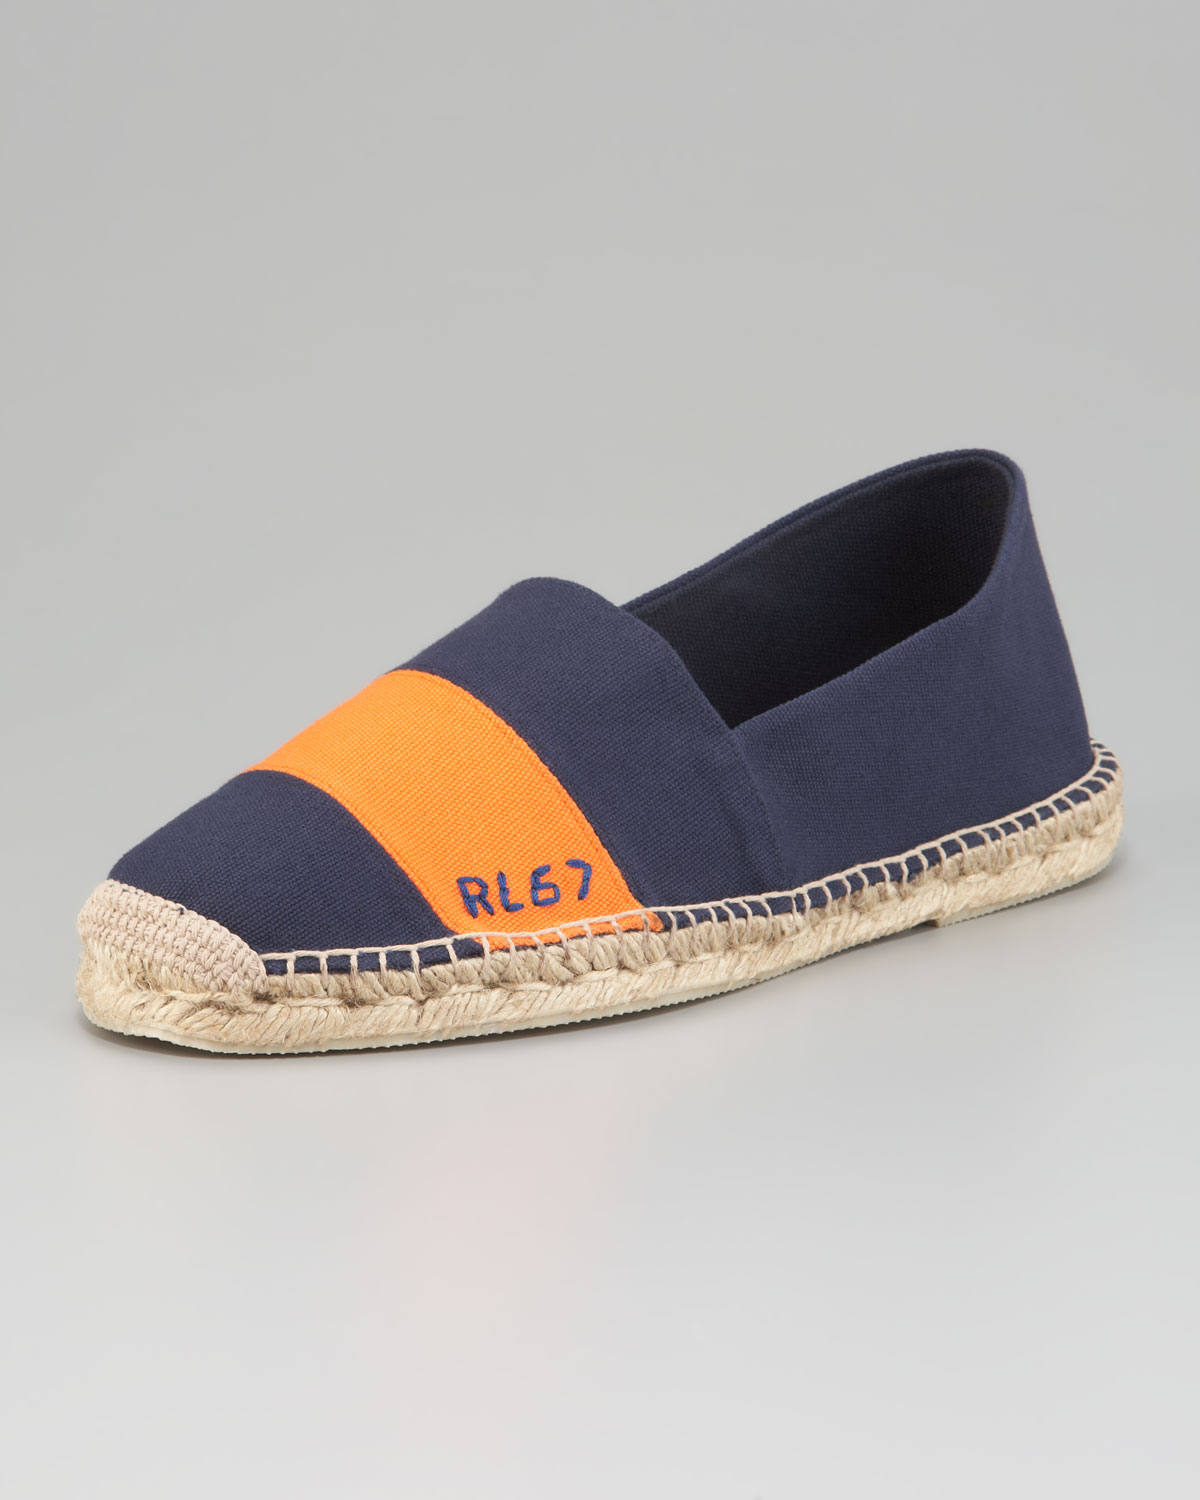 ralph lauren striped canvas espadrille in blue for men lyst. Black Bedroom Furniture Sets. Home Design Ideas